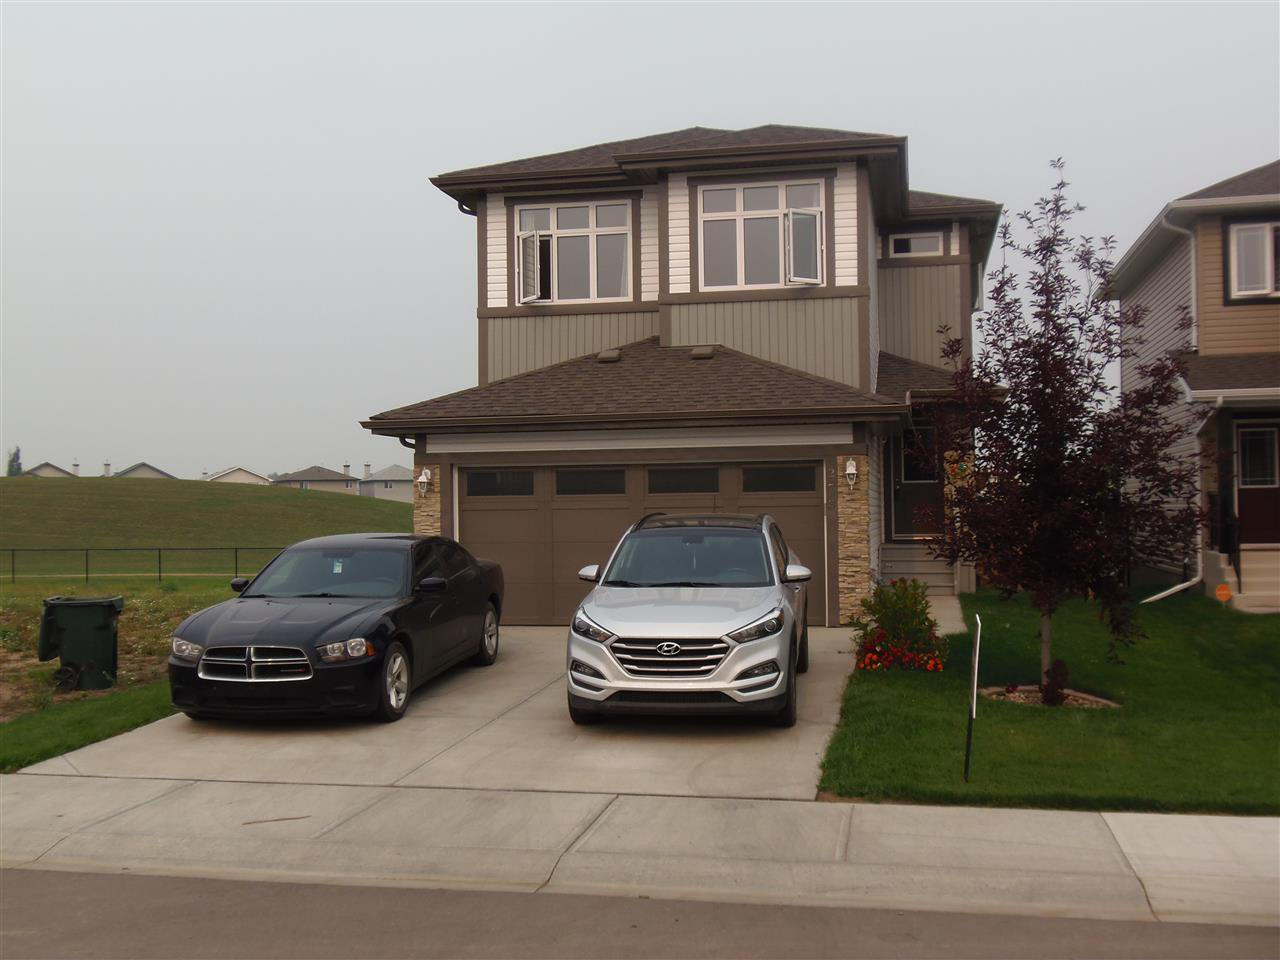 Main Photo: 273 SILVERSTONE Crescent: Stony Plain House for sale : MLS®# E4156331